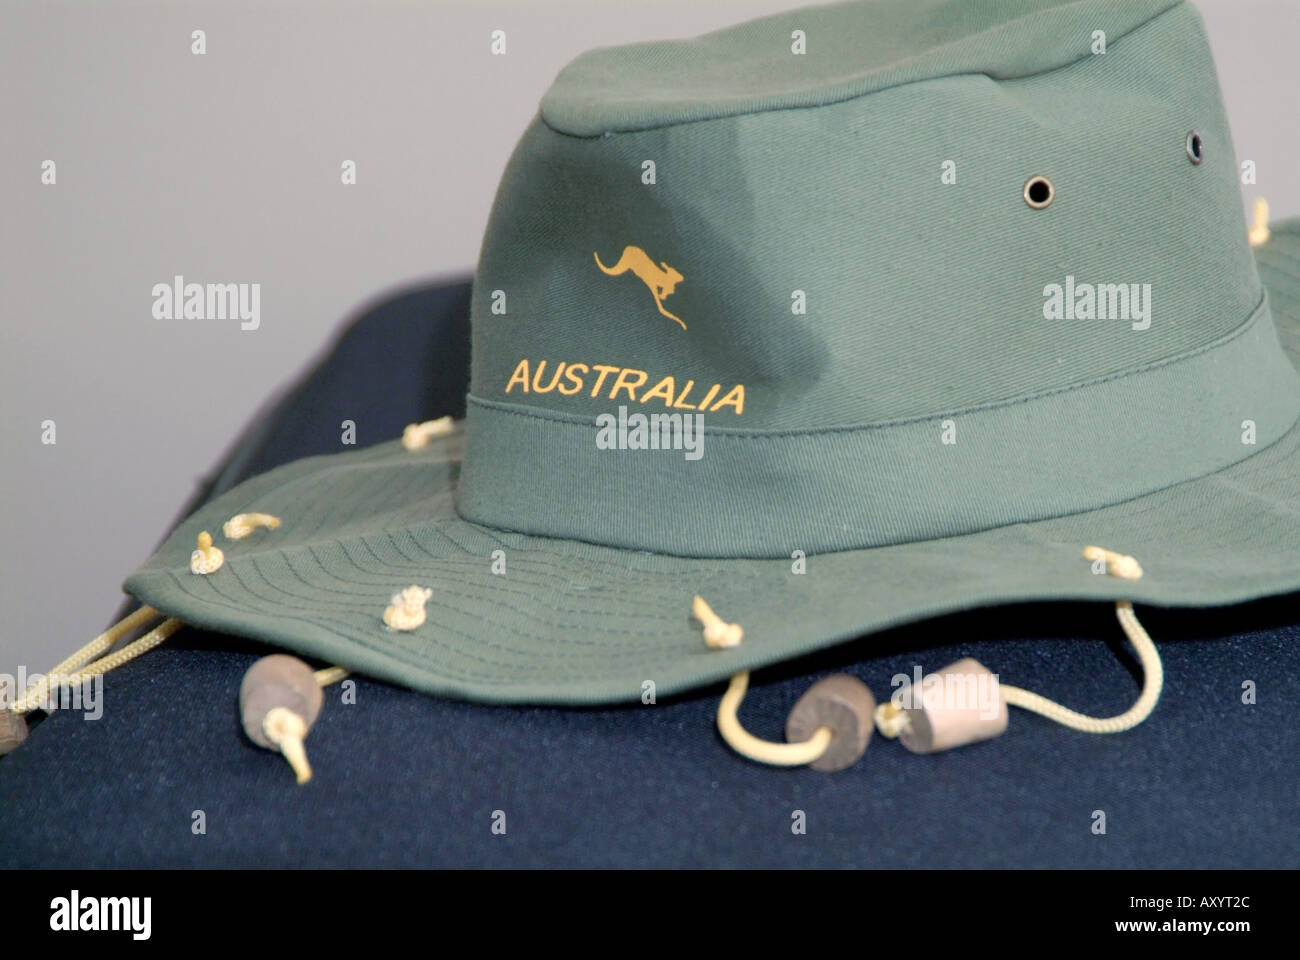 27365a02fbb Walkabout Australia Stock Photos   Walkabout Australia Stock Images ...